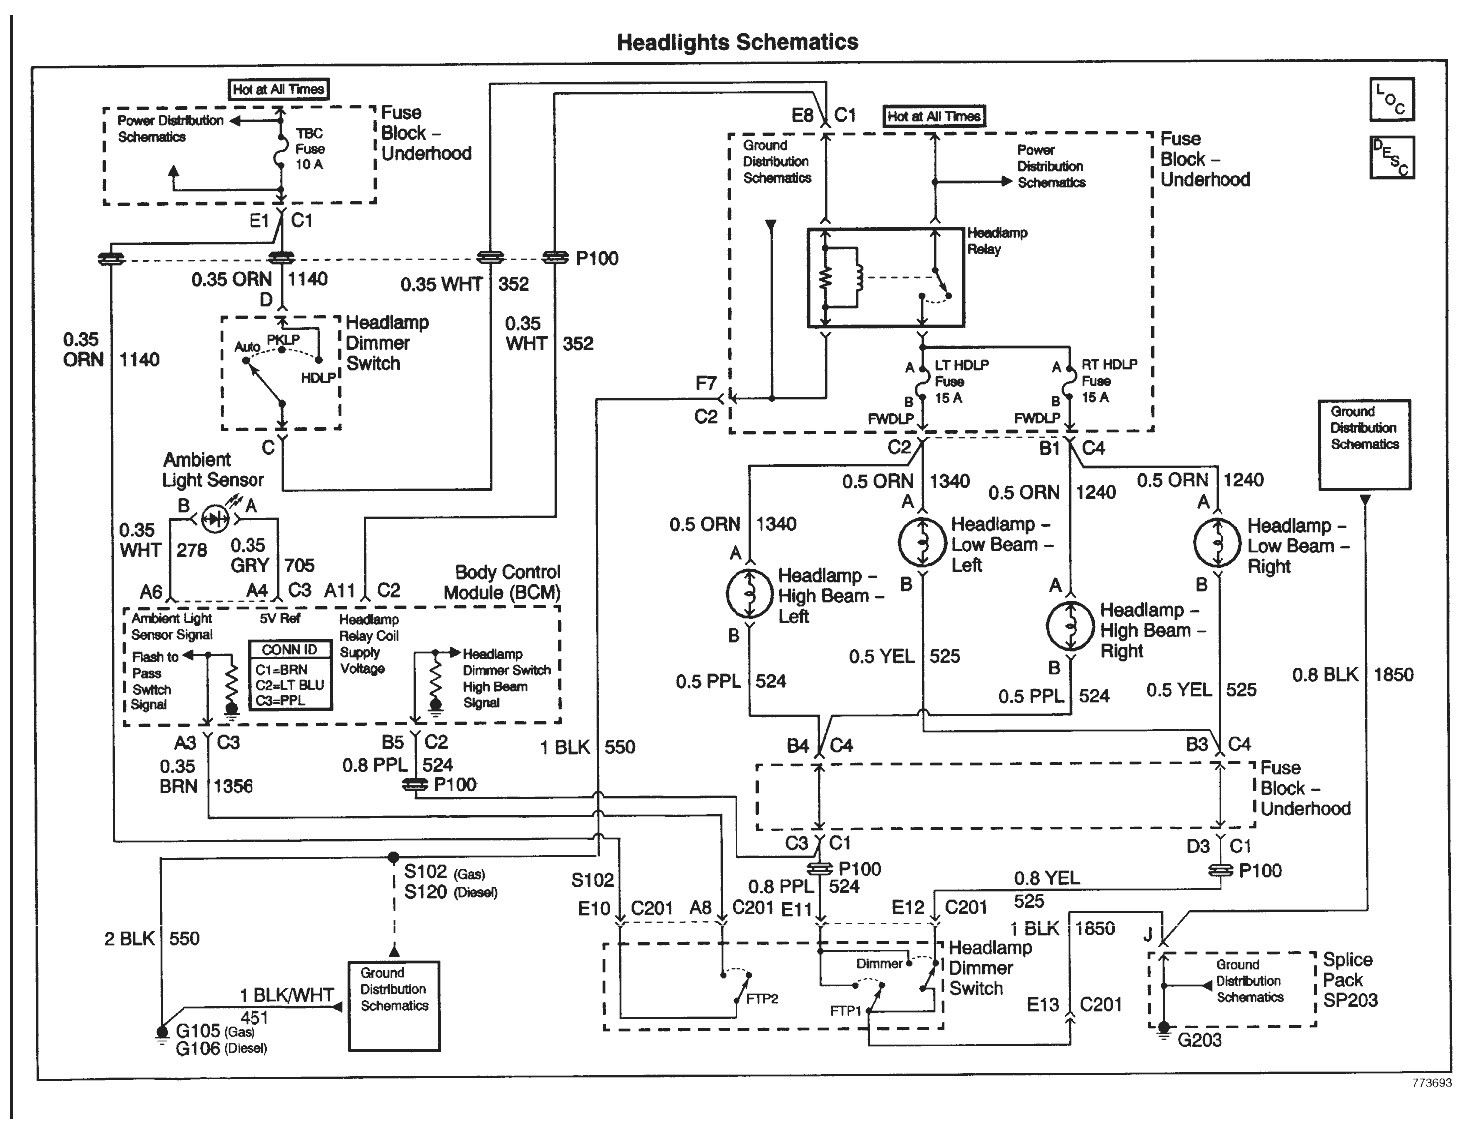 Chevy Silverado Drawing At Free For Personal Use Boss Snow Plow Solenoid Wiring Diagram 1471x1138 Best Of 2005 New Update